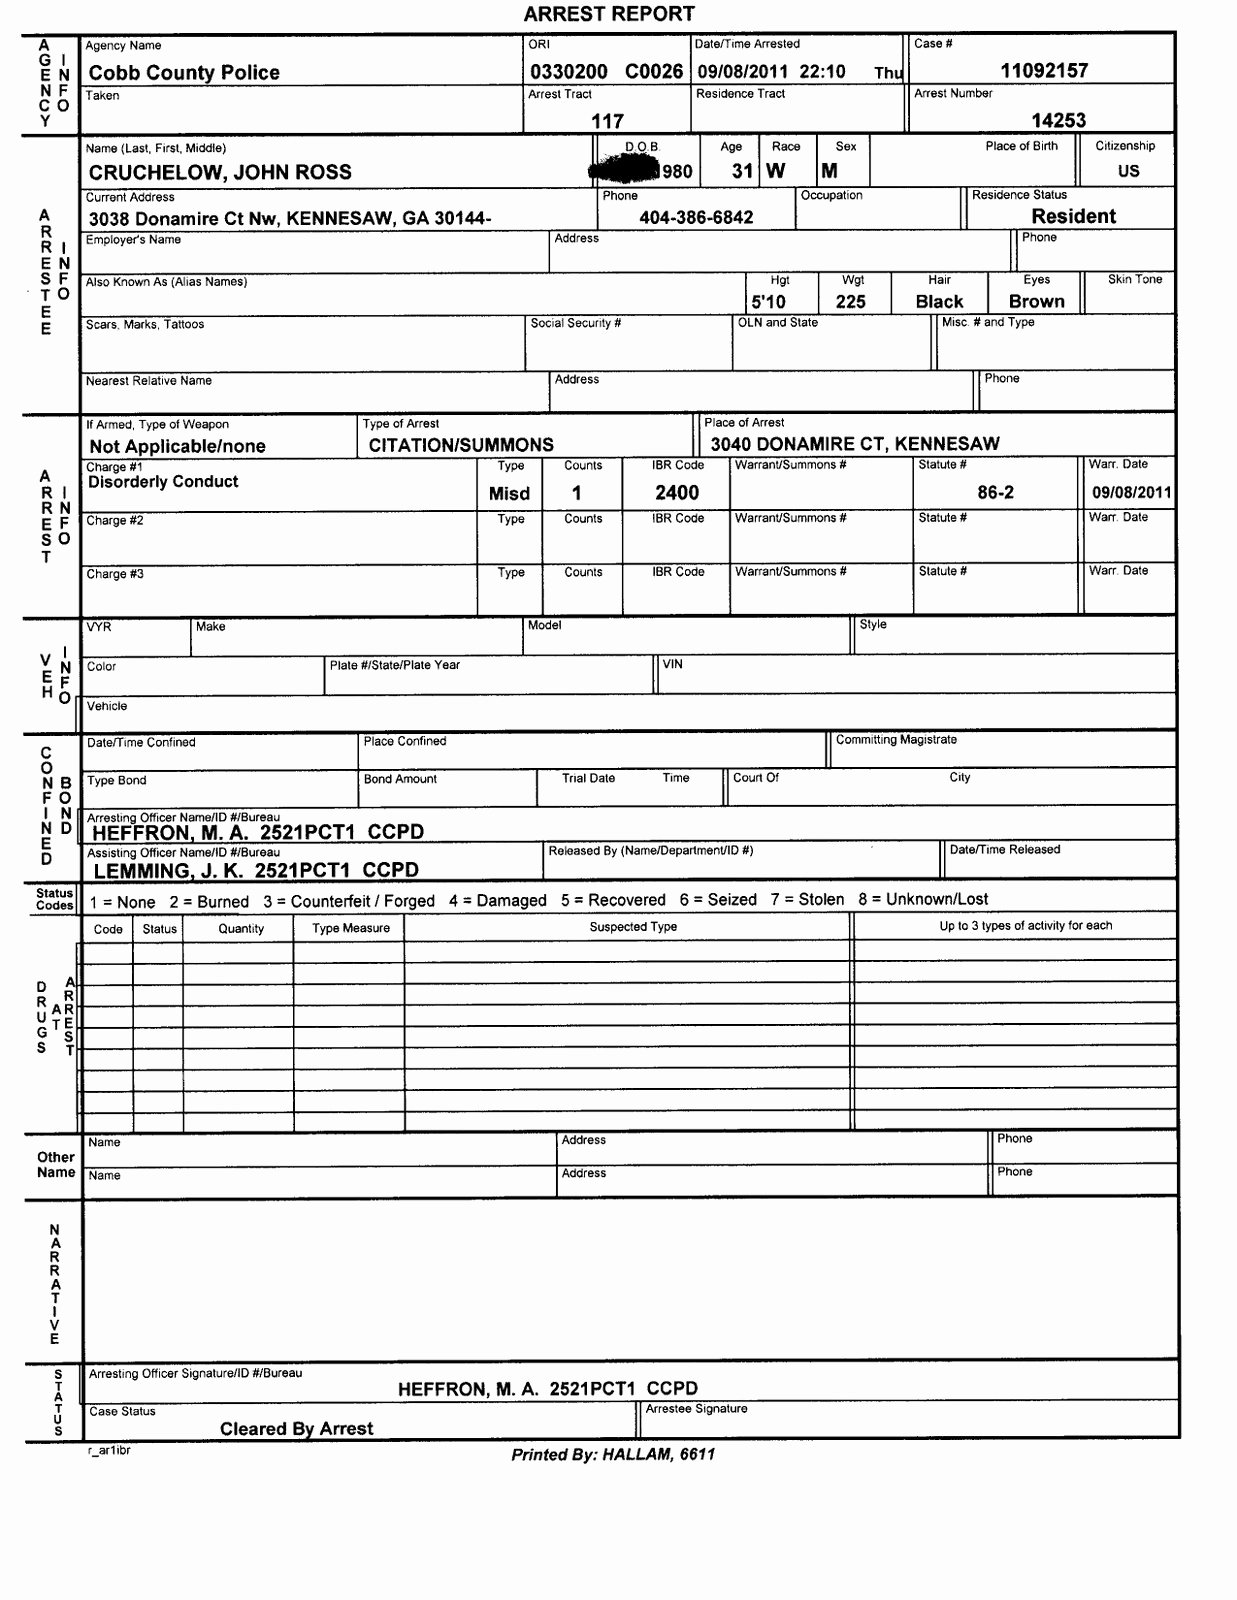 Blank Police Report Template Beautiful Police Report Template